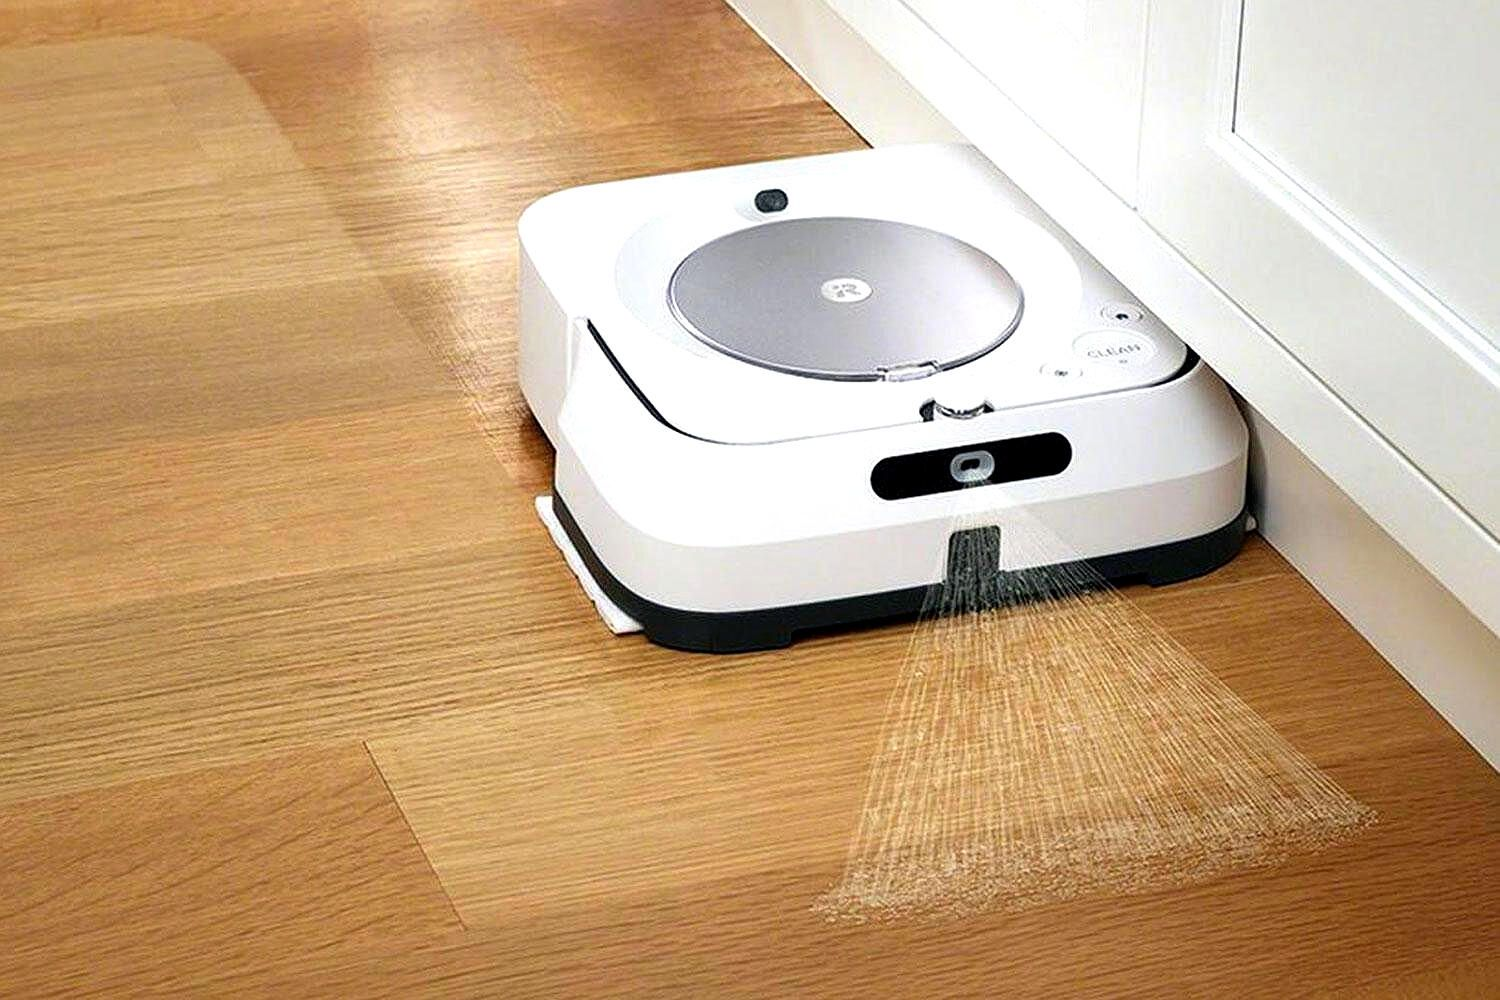 Best Cool Must Buy Home Products House Gadget Ideas In 2020